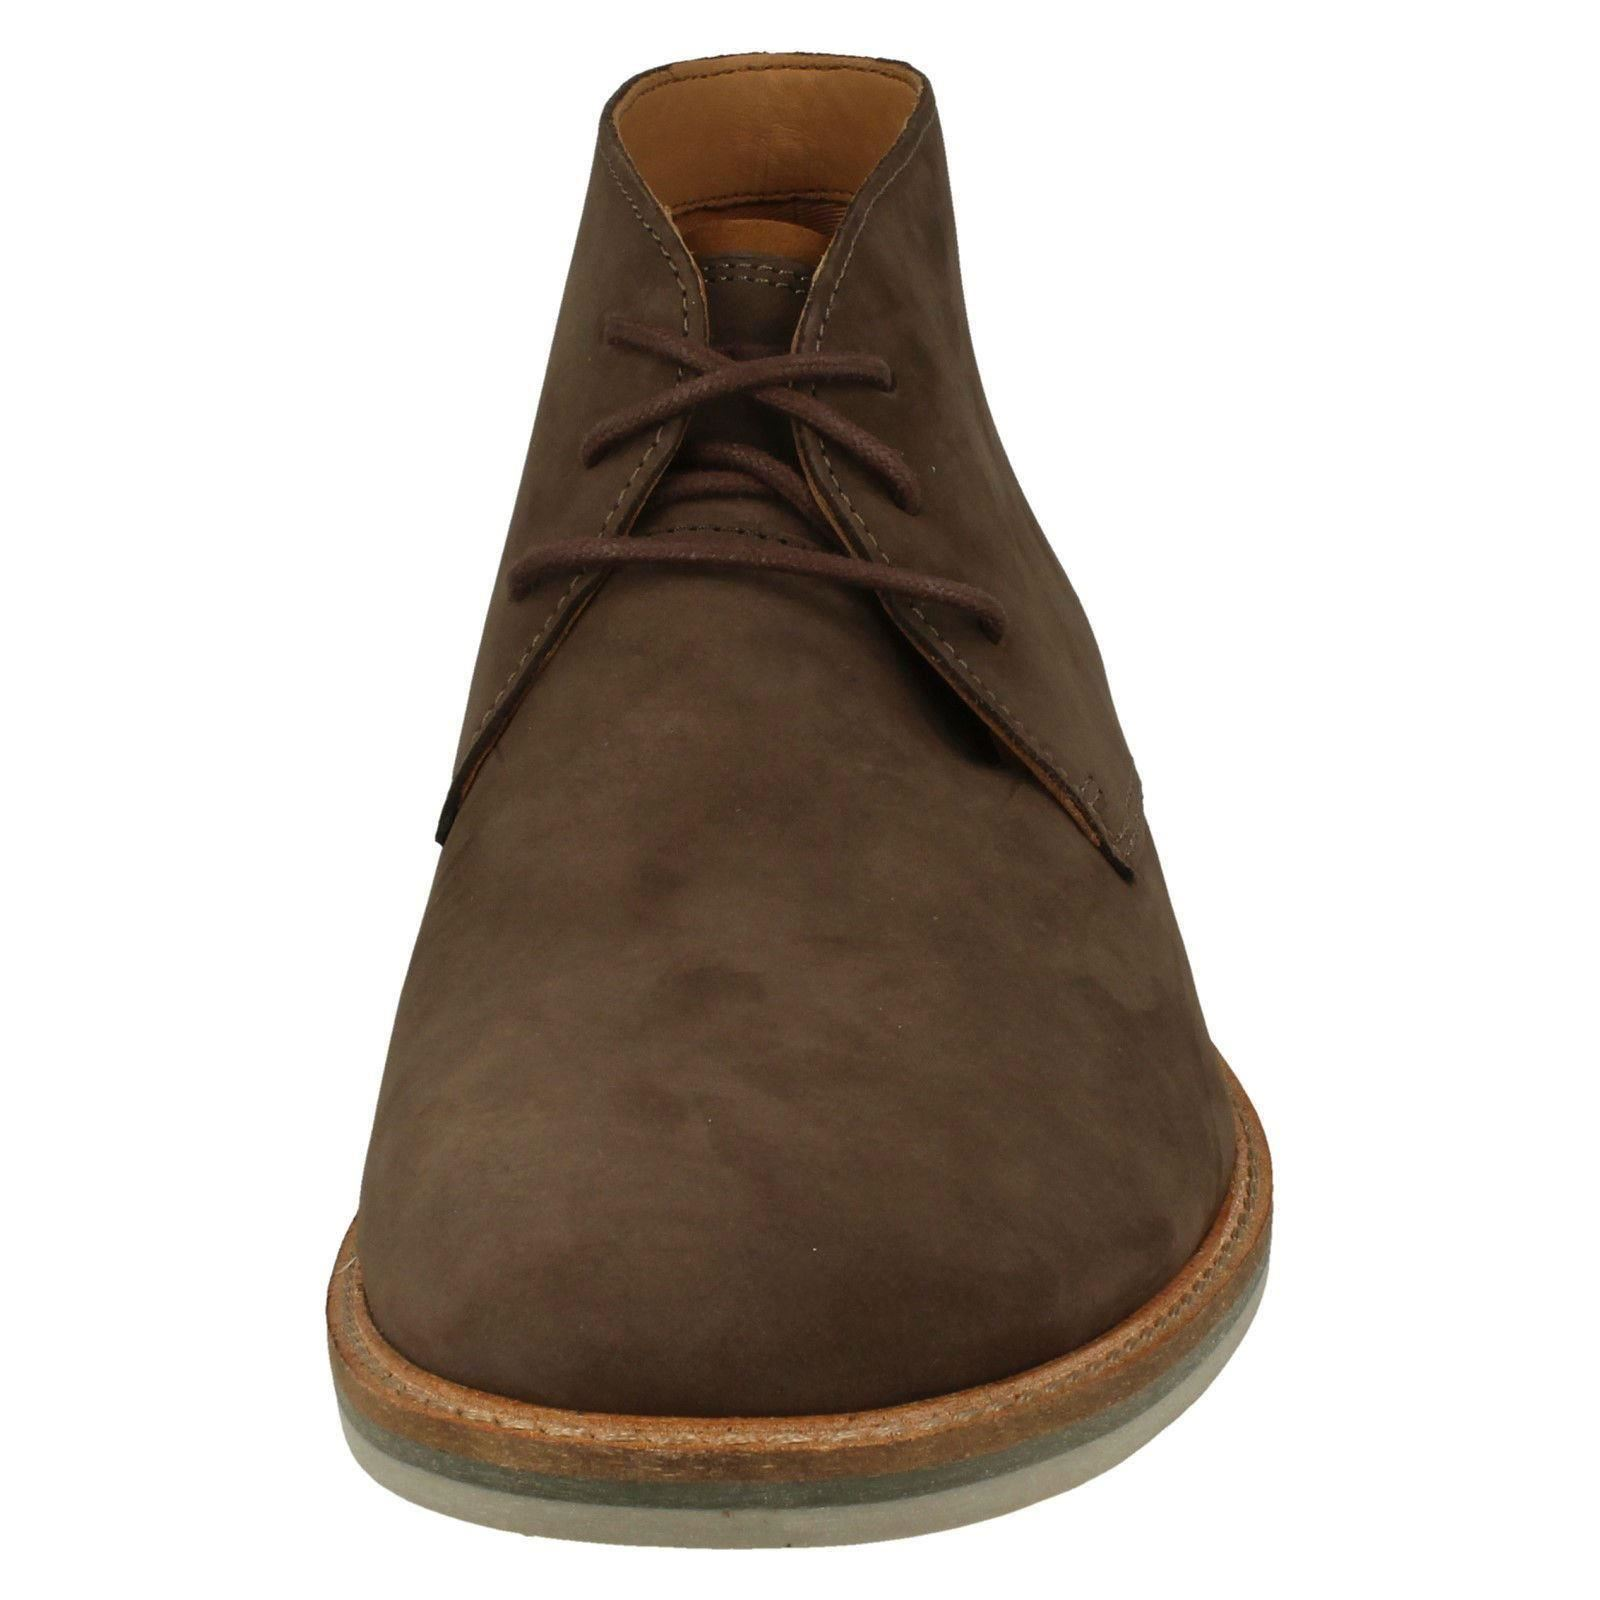 Clarks Mens Casual Ankle Boots - Atticus Limit